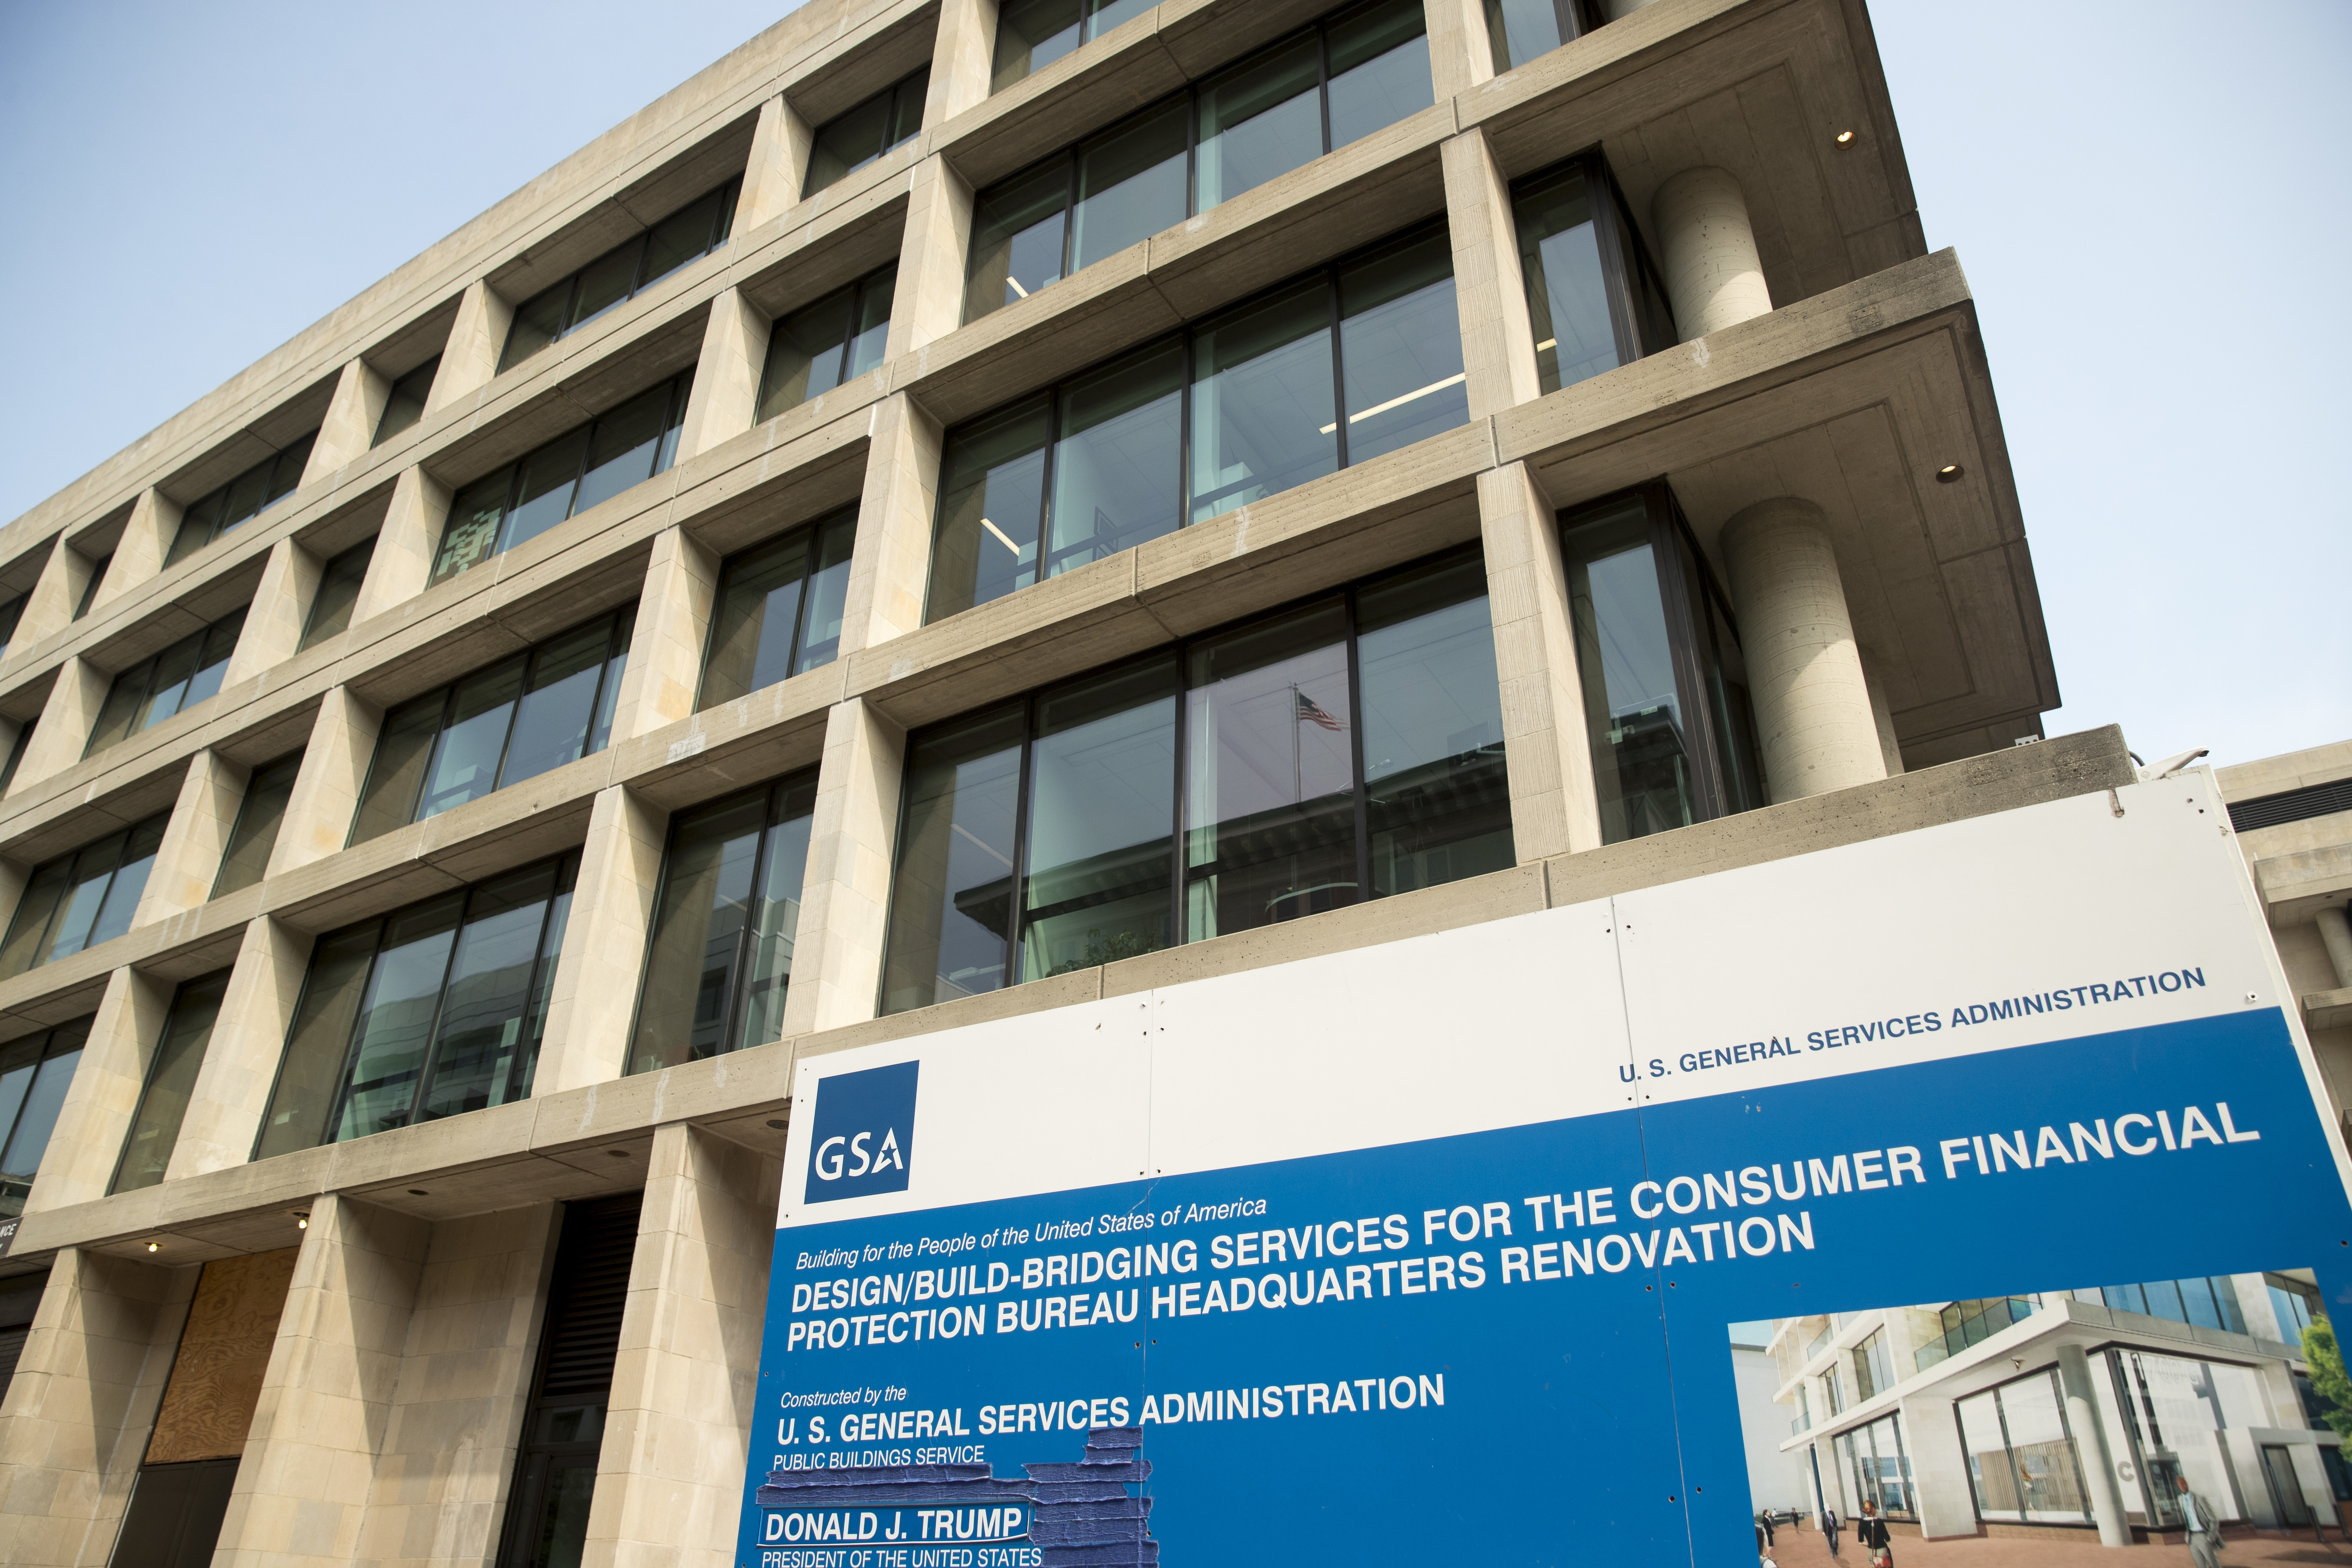 The construction site for the Consumer Financial Protection Bureau's new headquarters in Washington, Monday, Aug. 27, 2018. Seth Frotman, the nation's top government official overseeing the $1.5 trillion student loan market is resigning, citing what he says is the White House's open hostility toward protecting student loan borrowers. (AP Photo/Andrew Harnik)